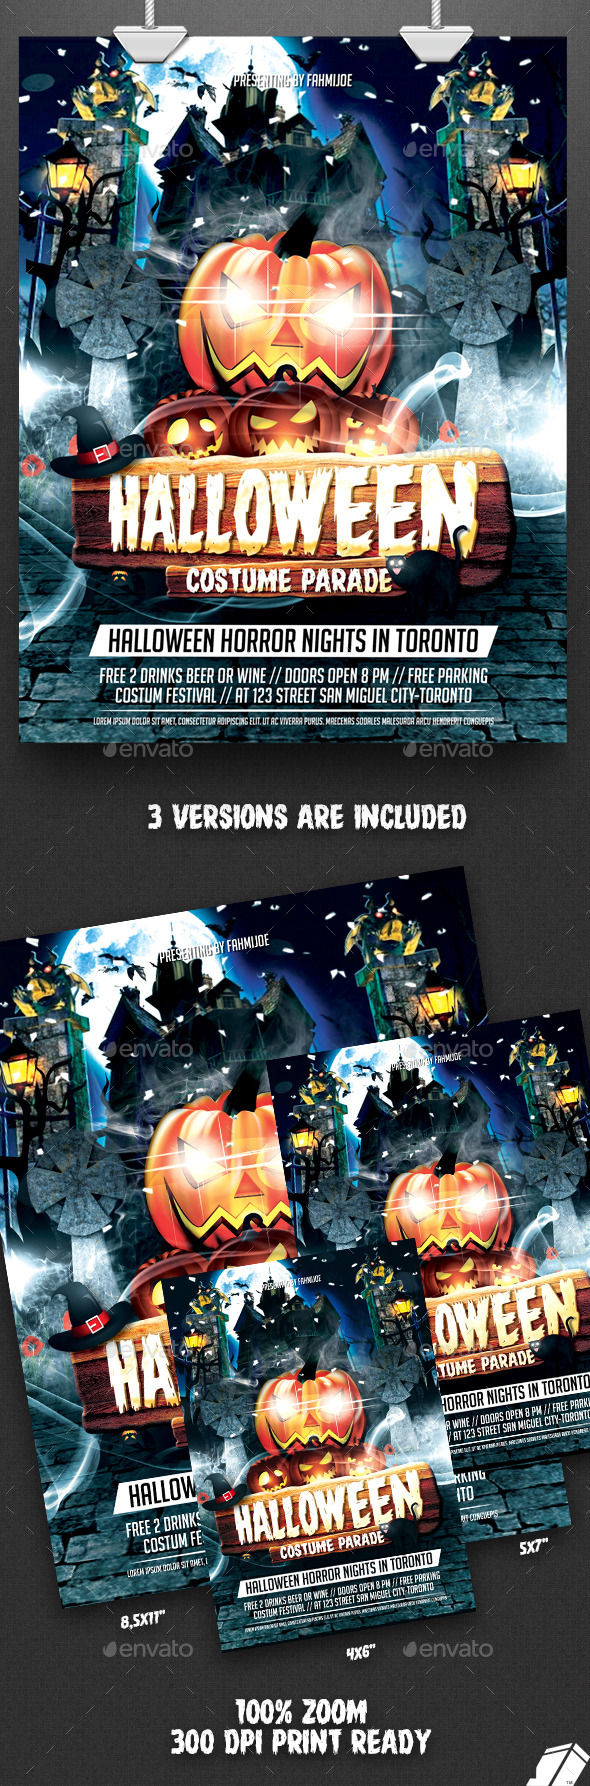 GraphicRiver Halloween Flyer Costume Parade 9150820